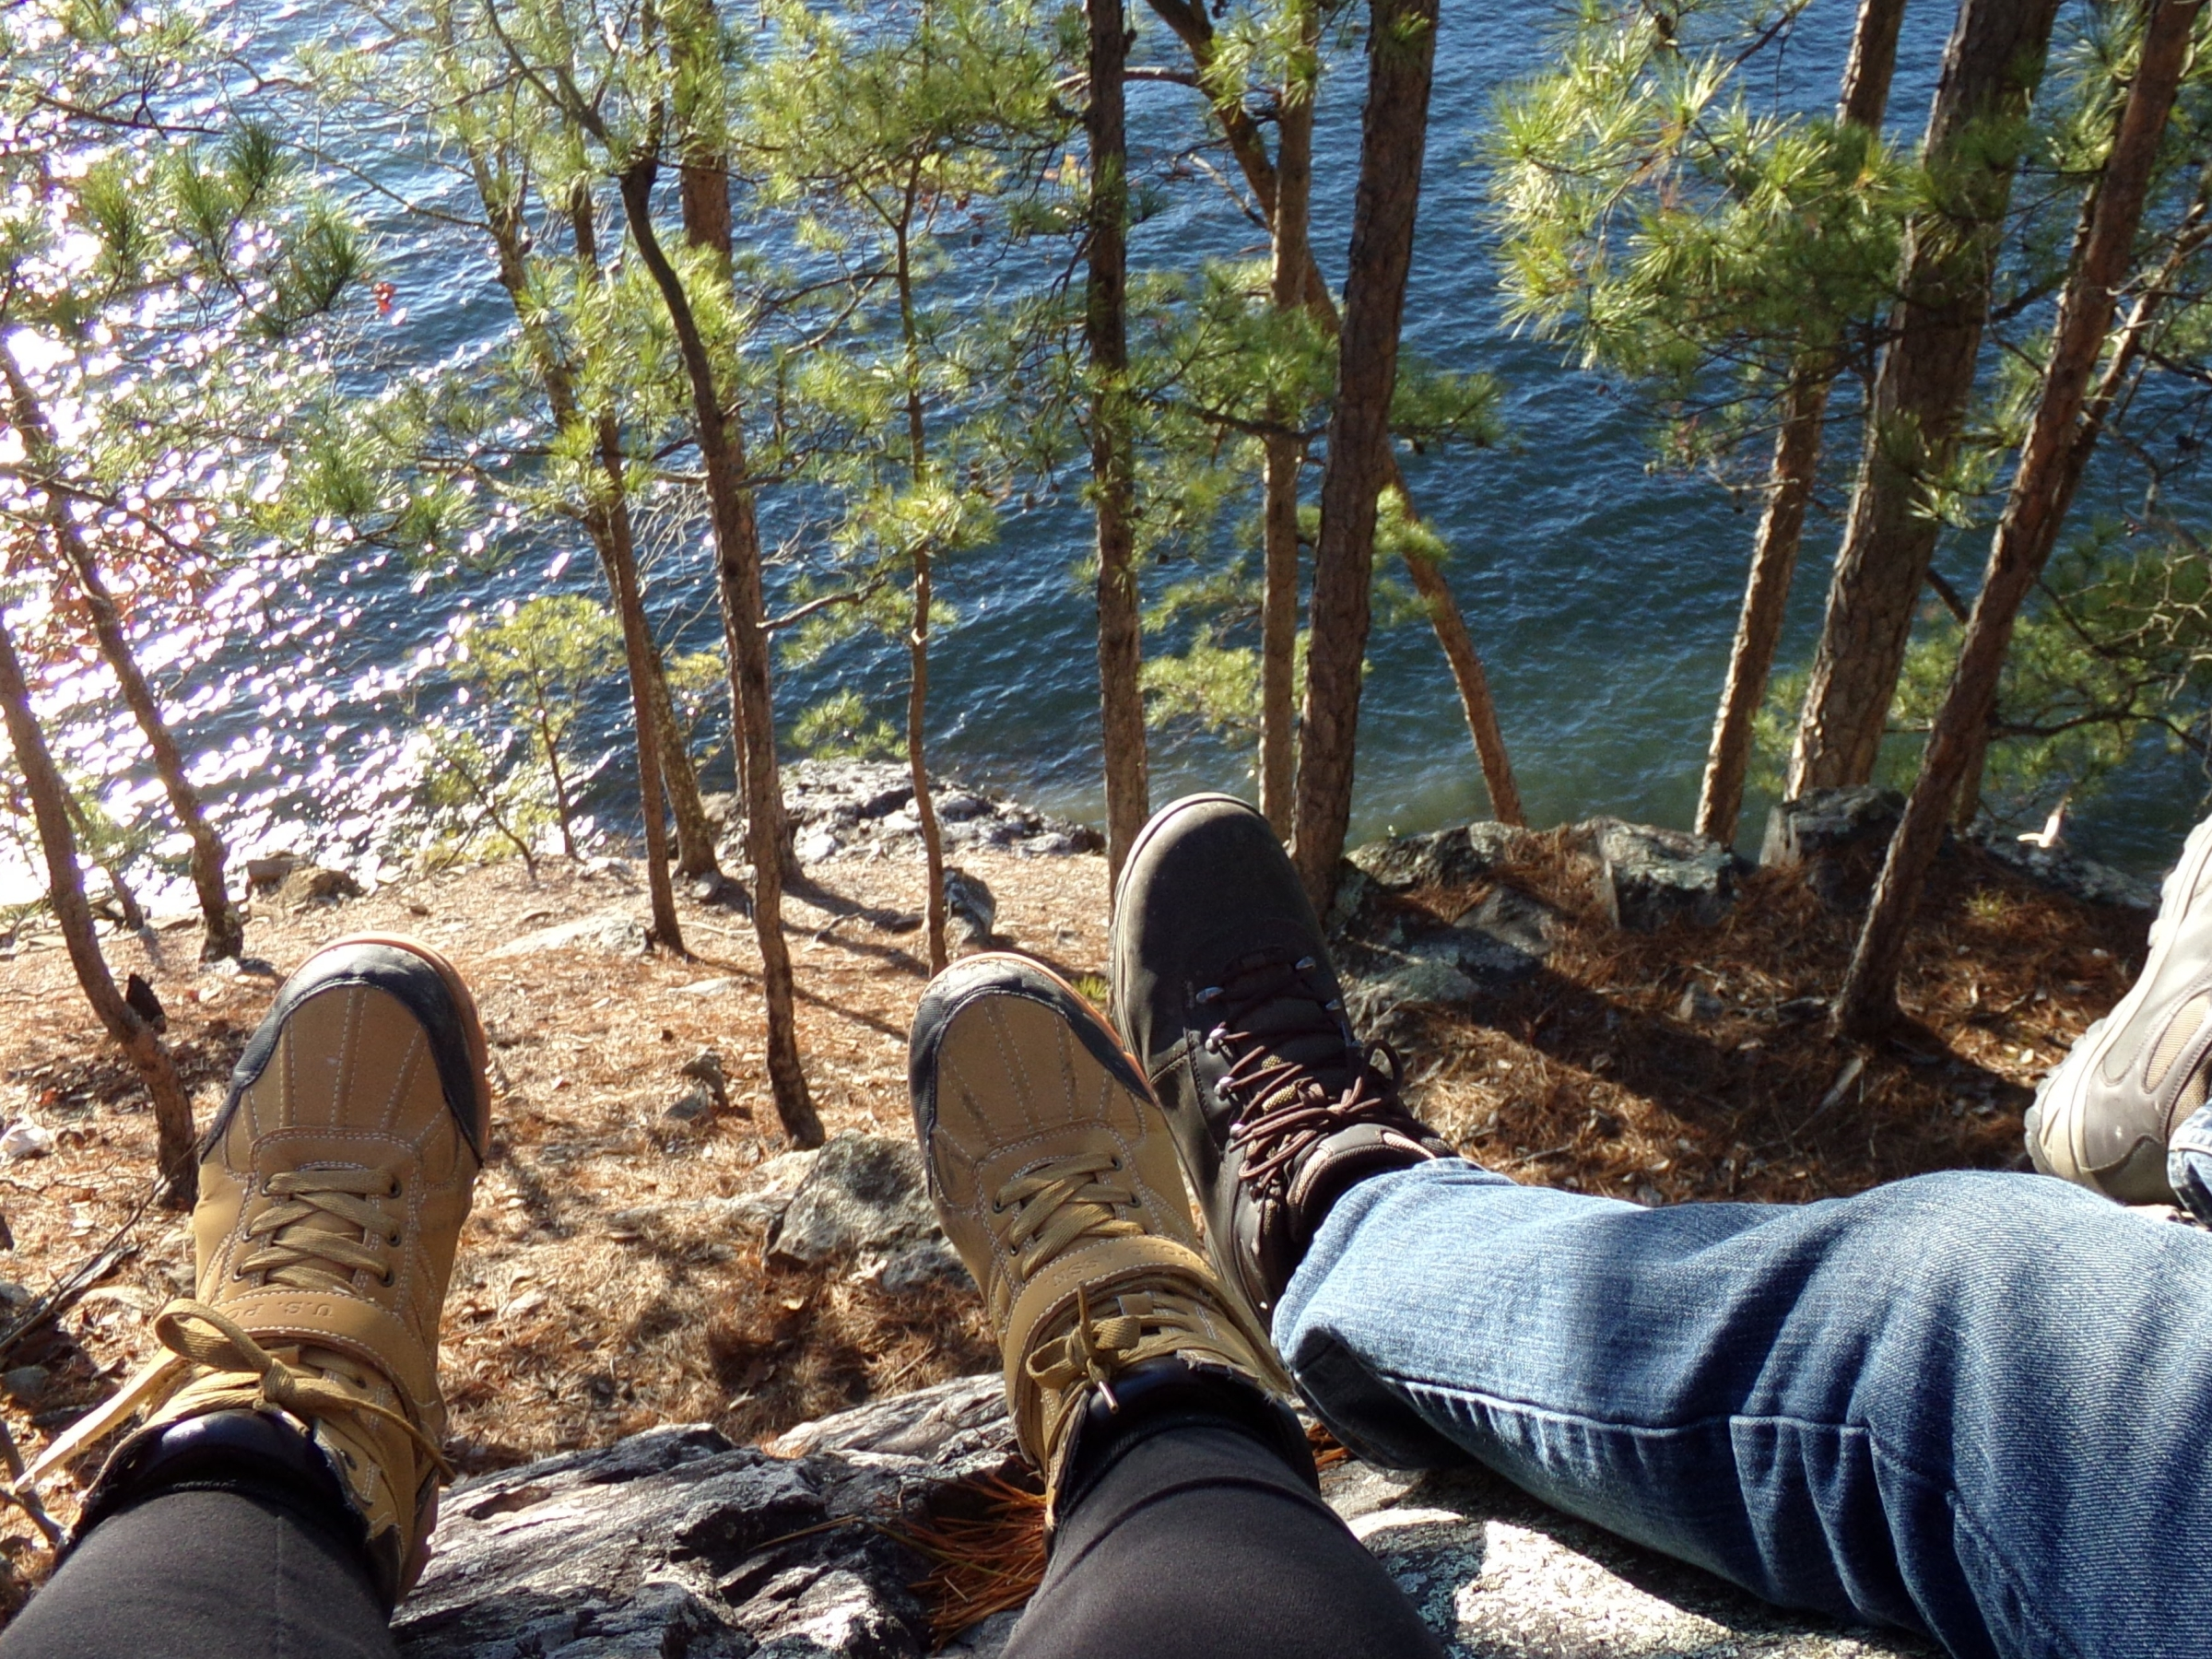 Feet dangling from a rock